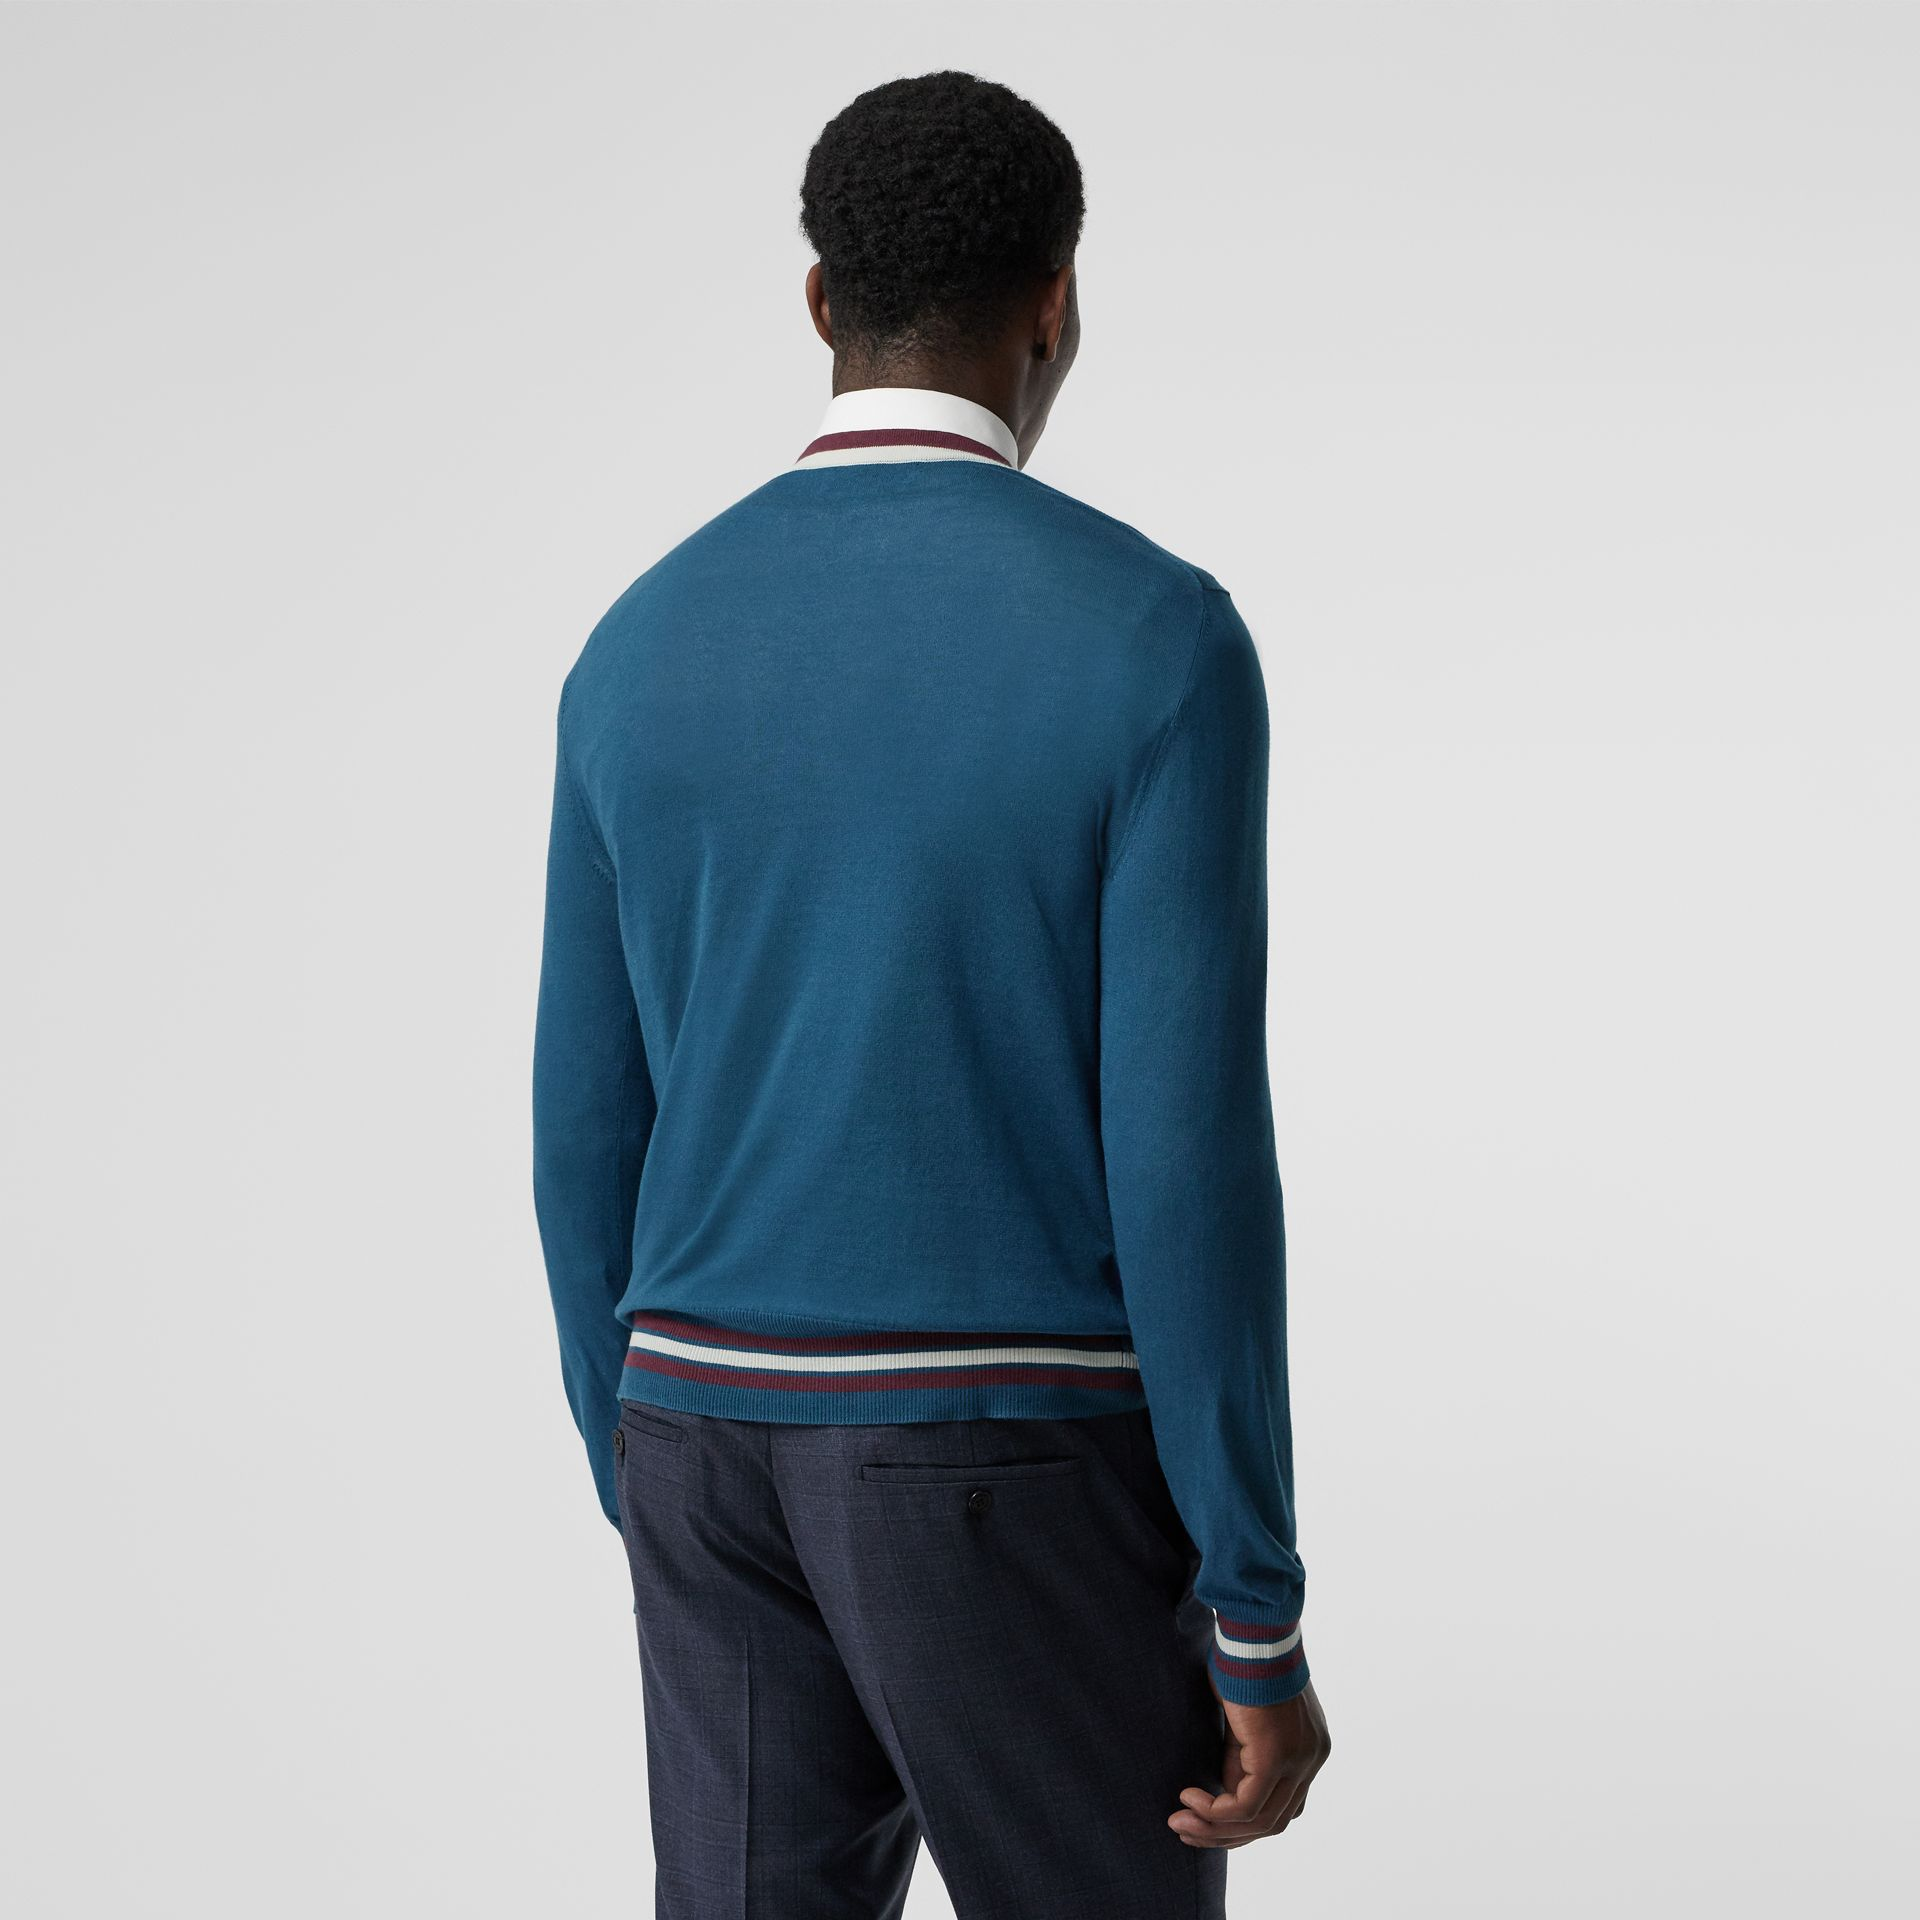 Embroidered Crest Cotton Silk Sweater in Dark Teal Blue - Men | Burberry United States - gallery image 2